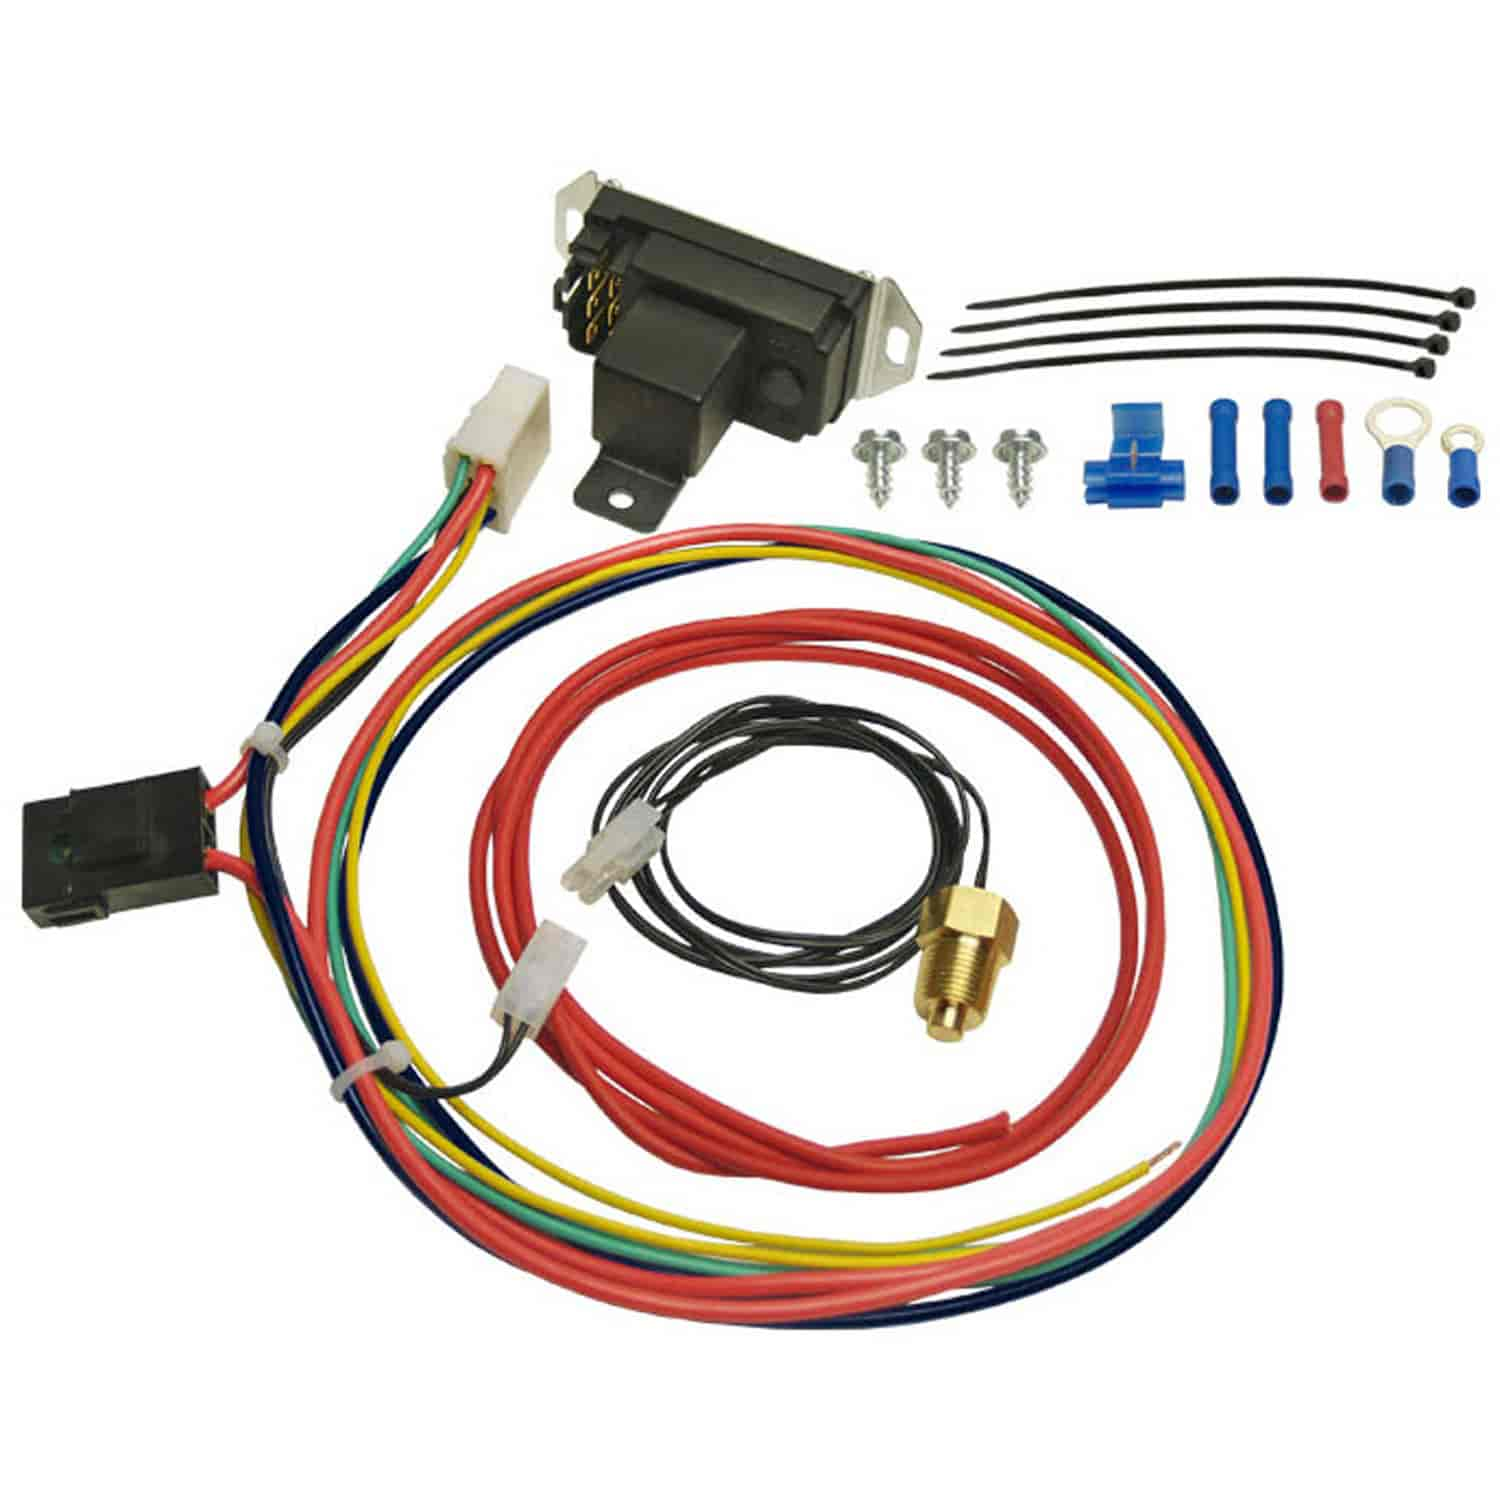 259 16749_1 jegs hot rod wiring harness wiring diagrams VW Wiring Harness Kits at gsmx.co